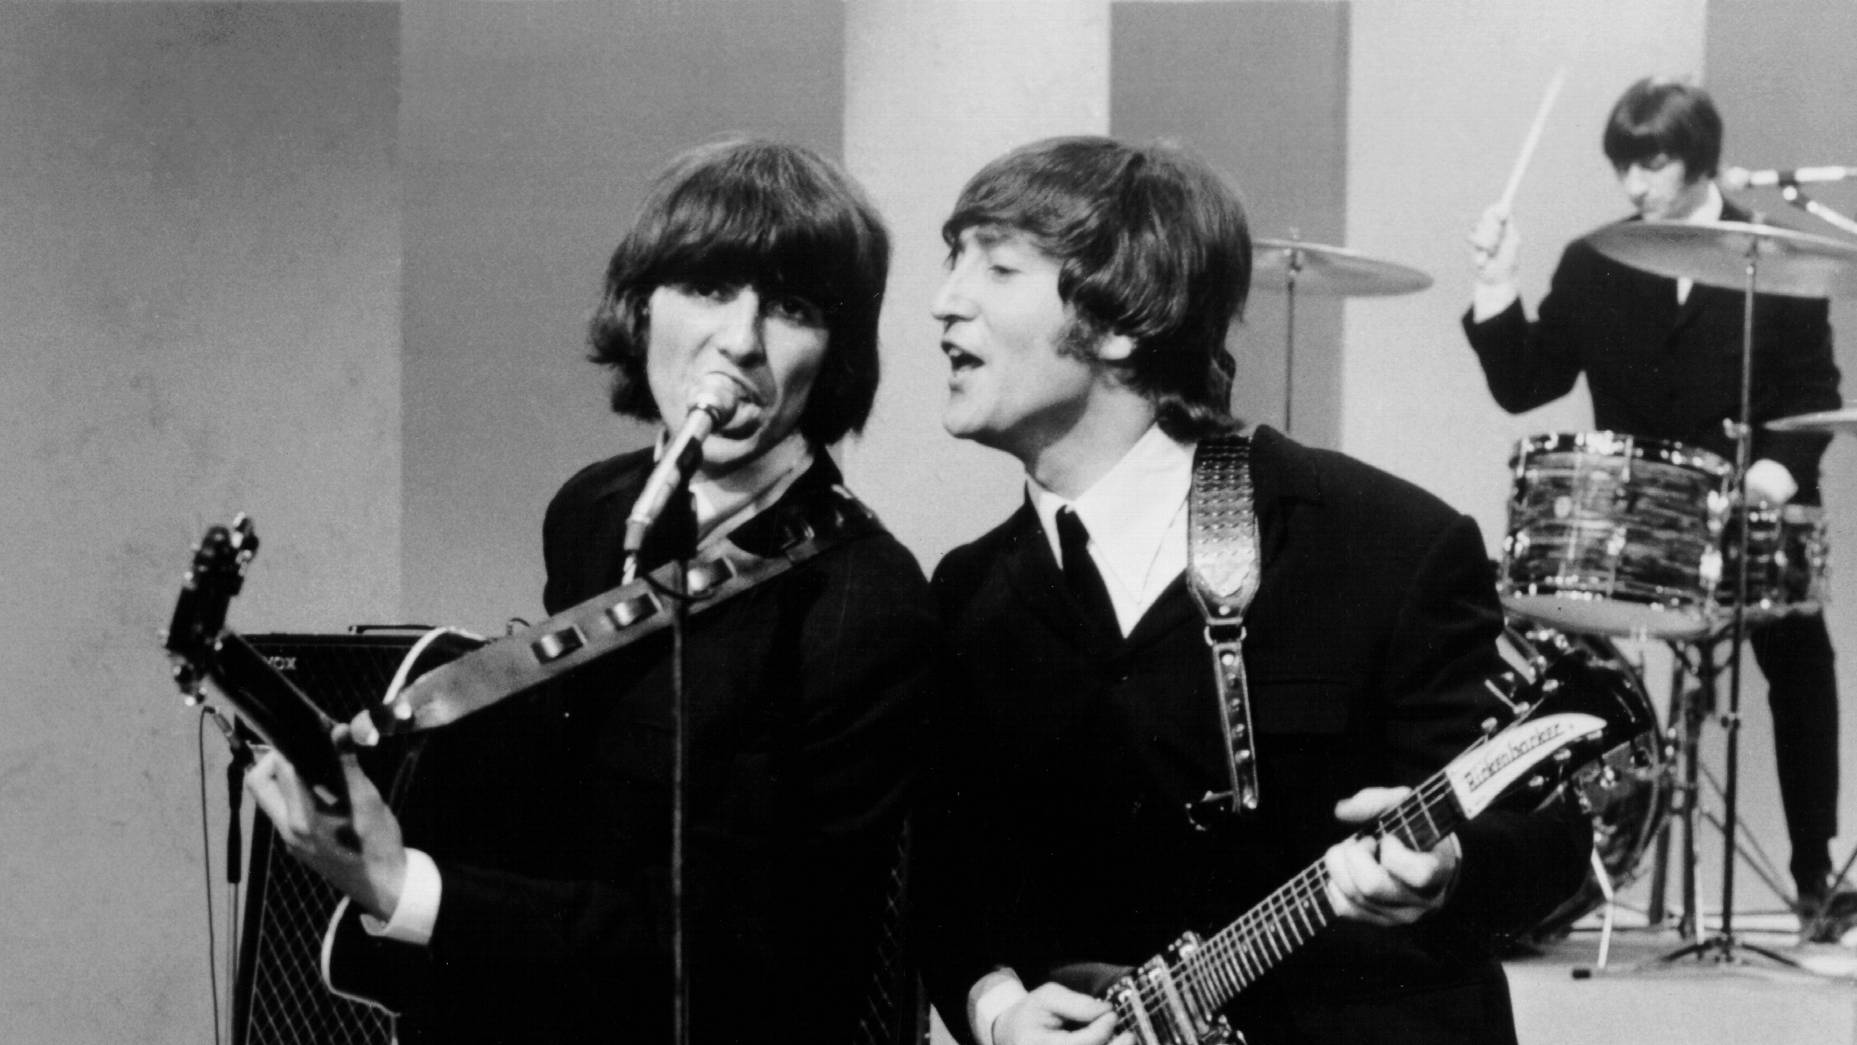 Video Guitar Once Owned By George Harrison And John Lennon Valued Up To 400k On Radio X